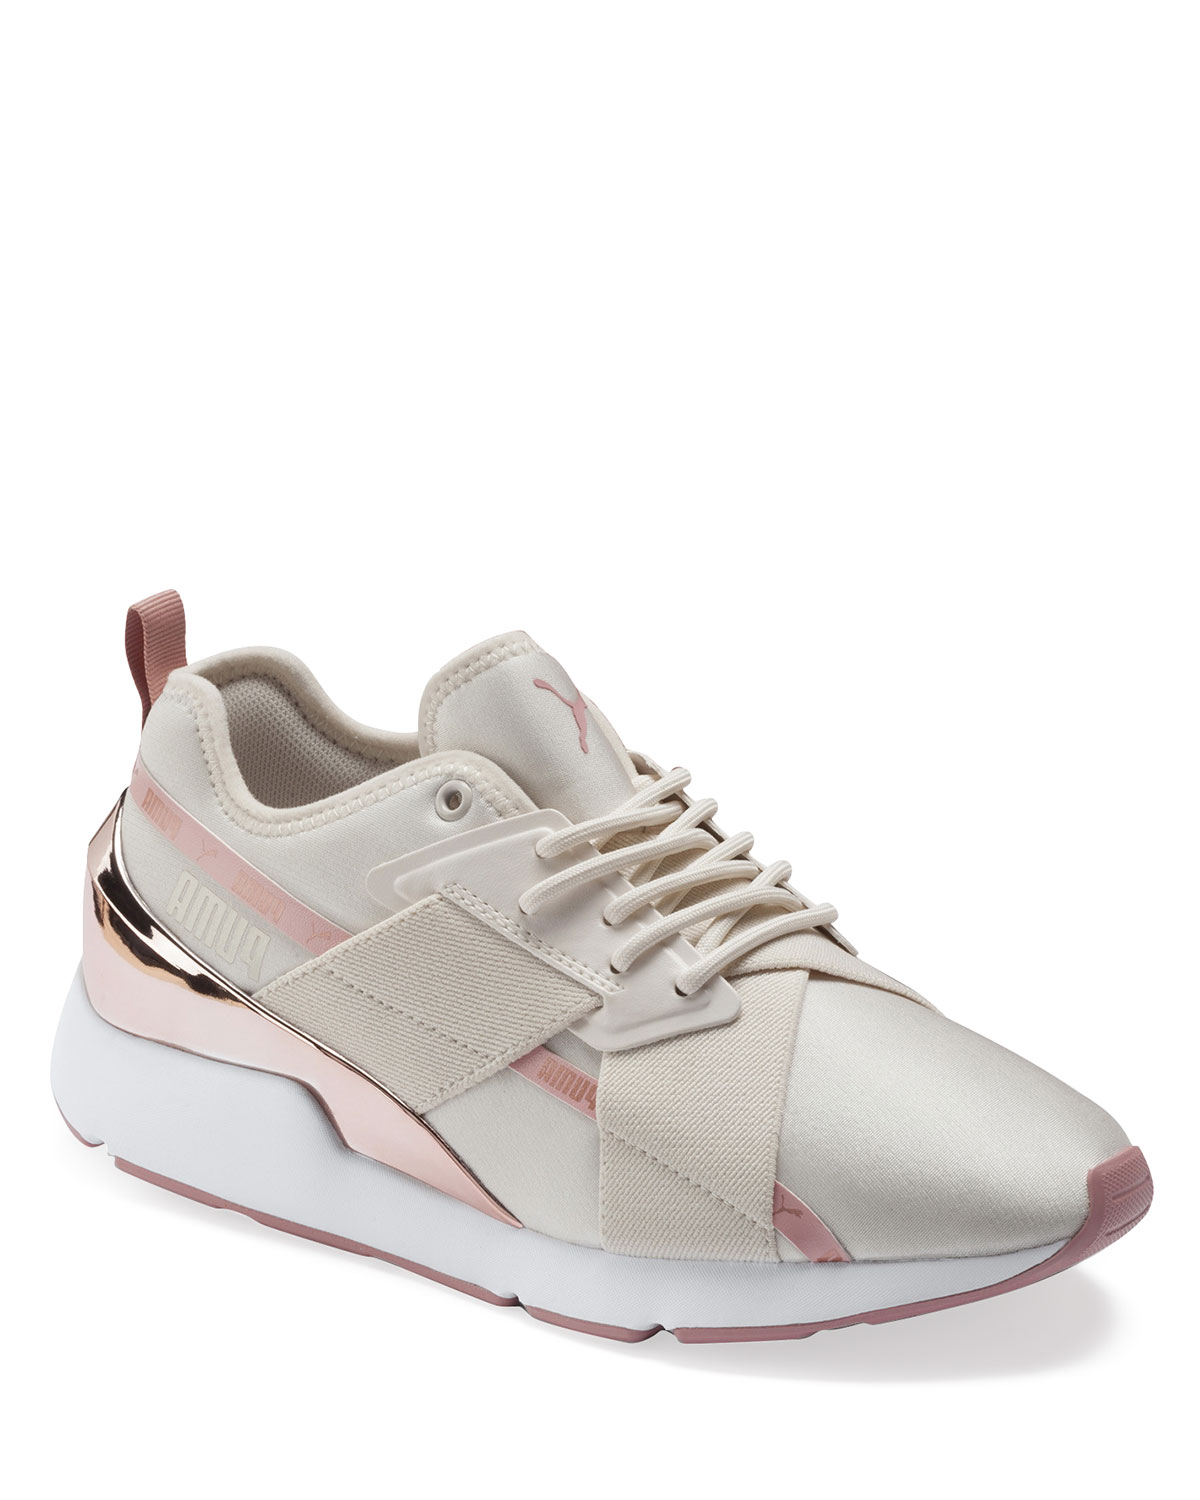 Muse Metallic Lace-Up Sneakers